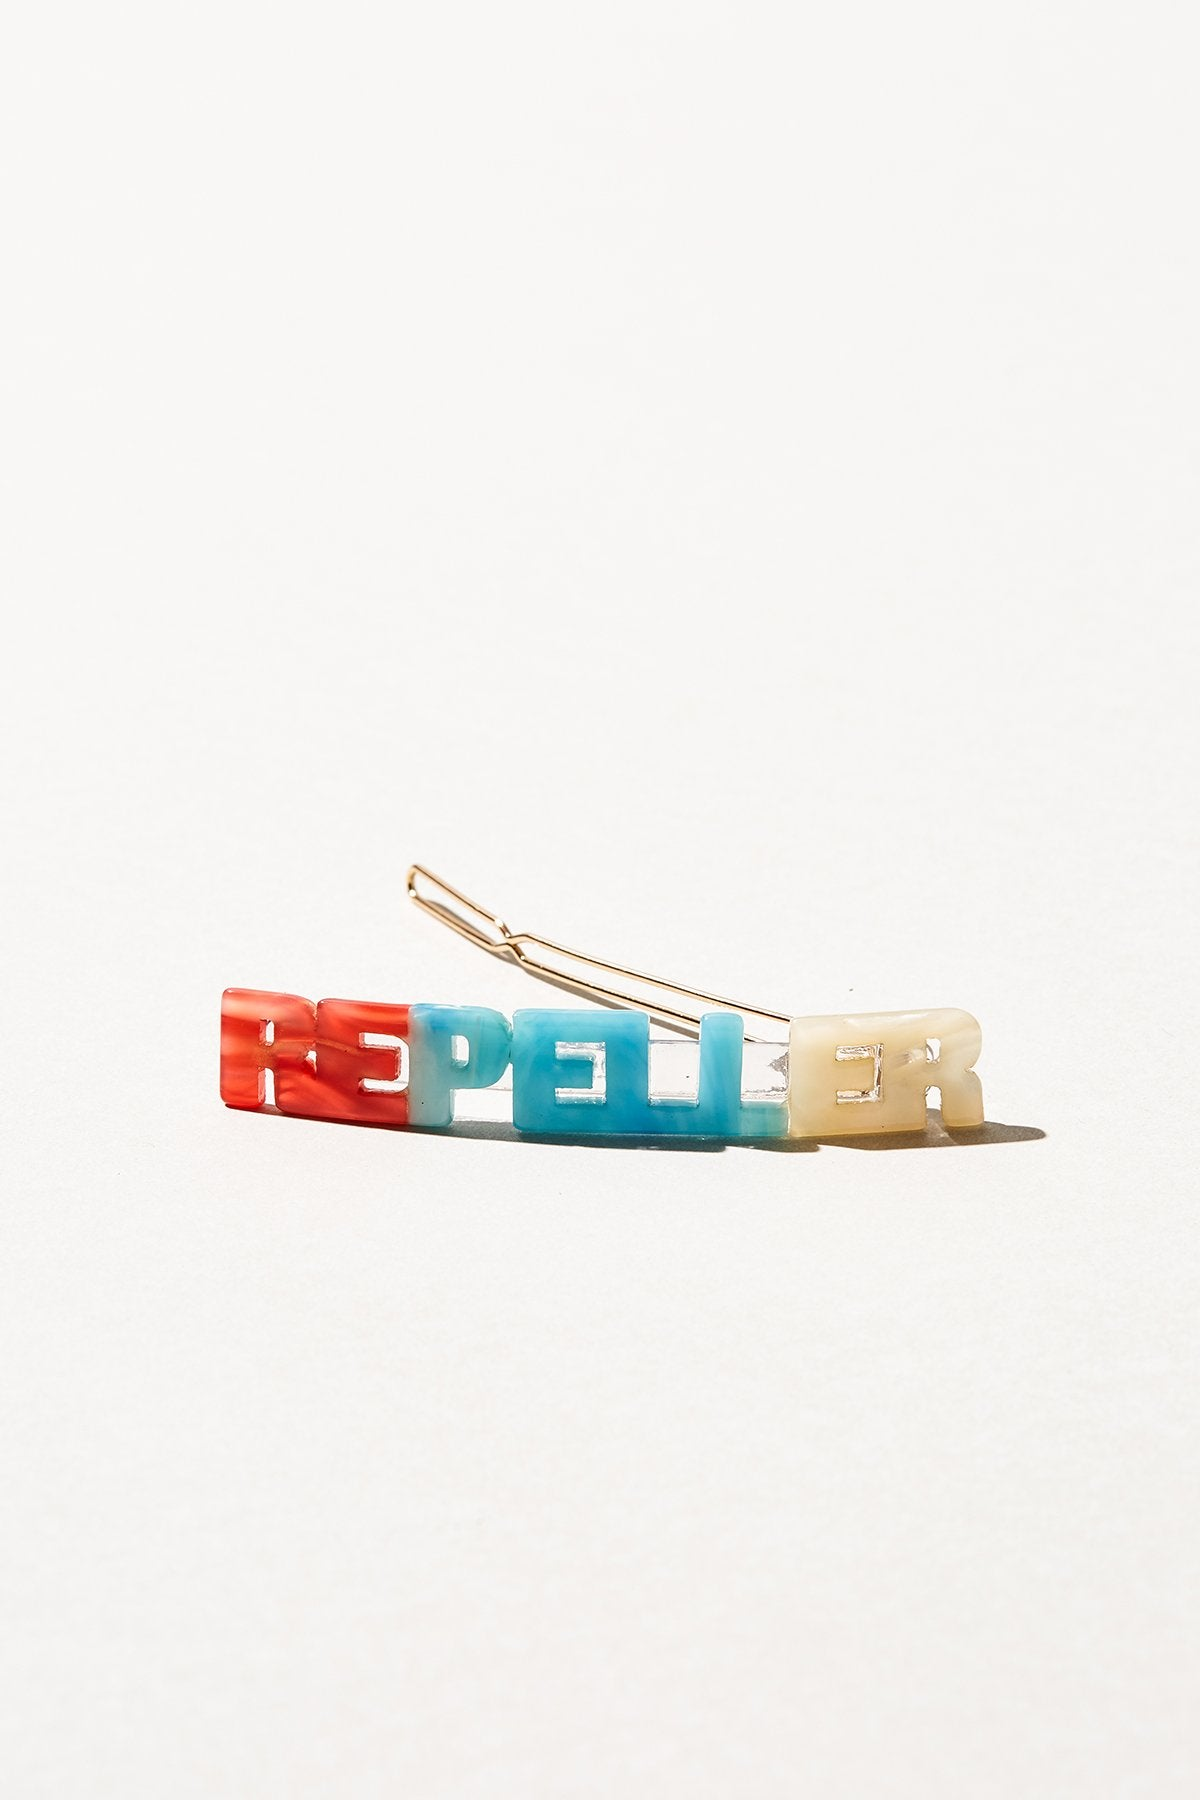 Repeller Flagpole - Red/White/Blue